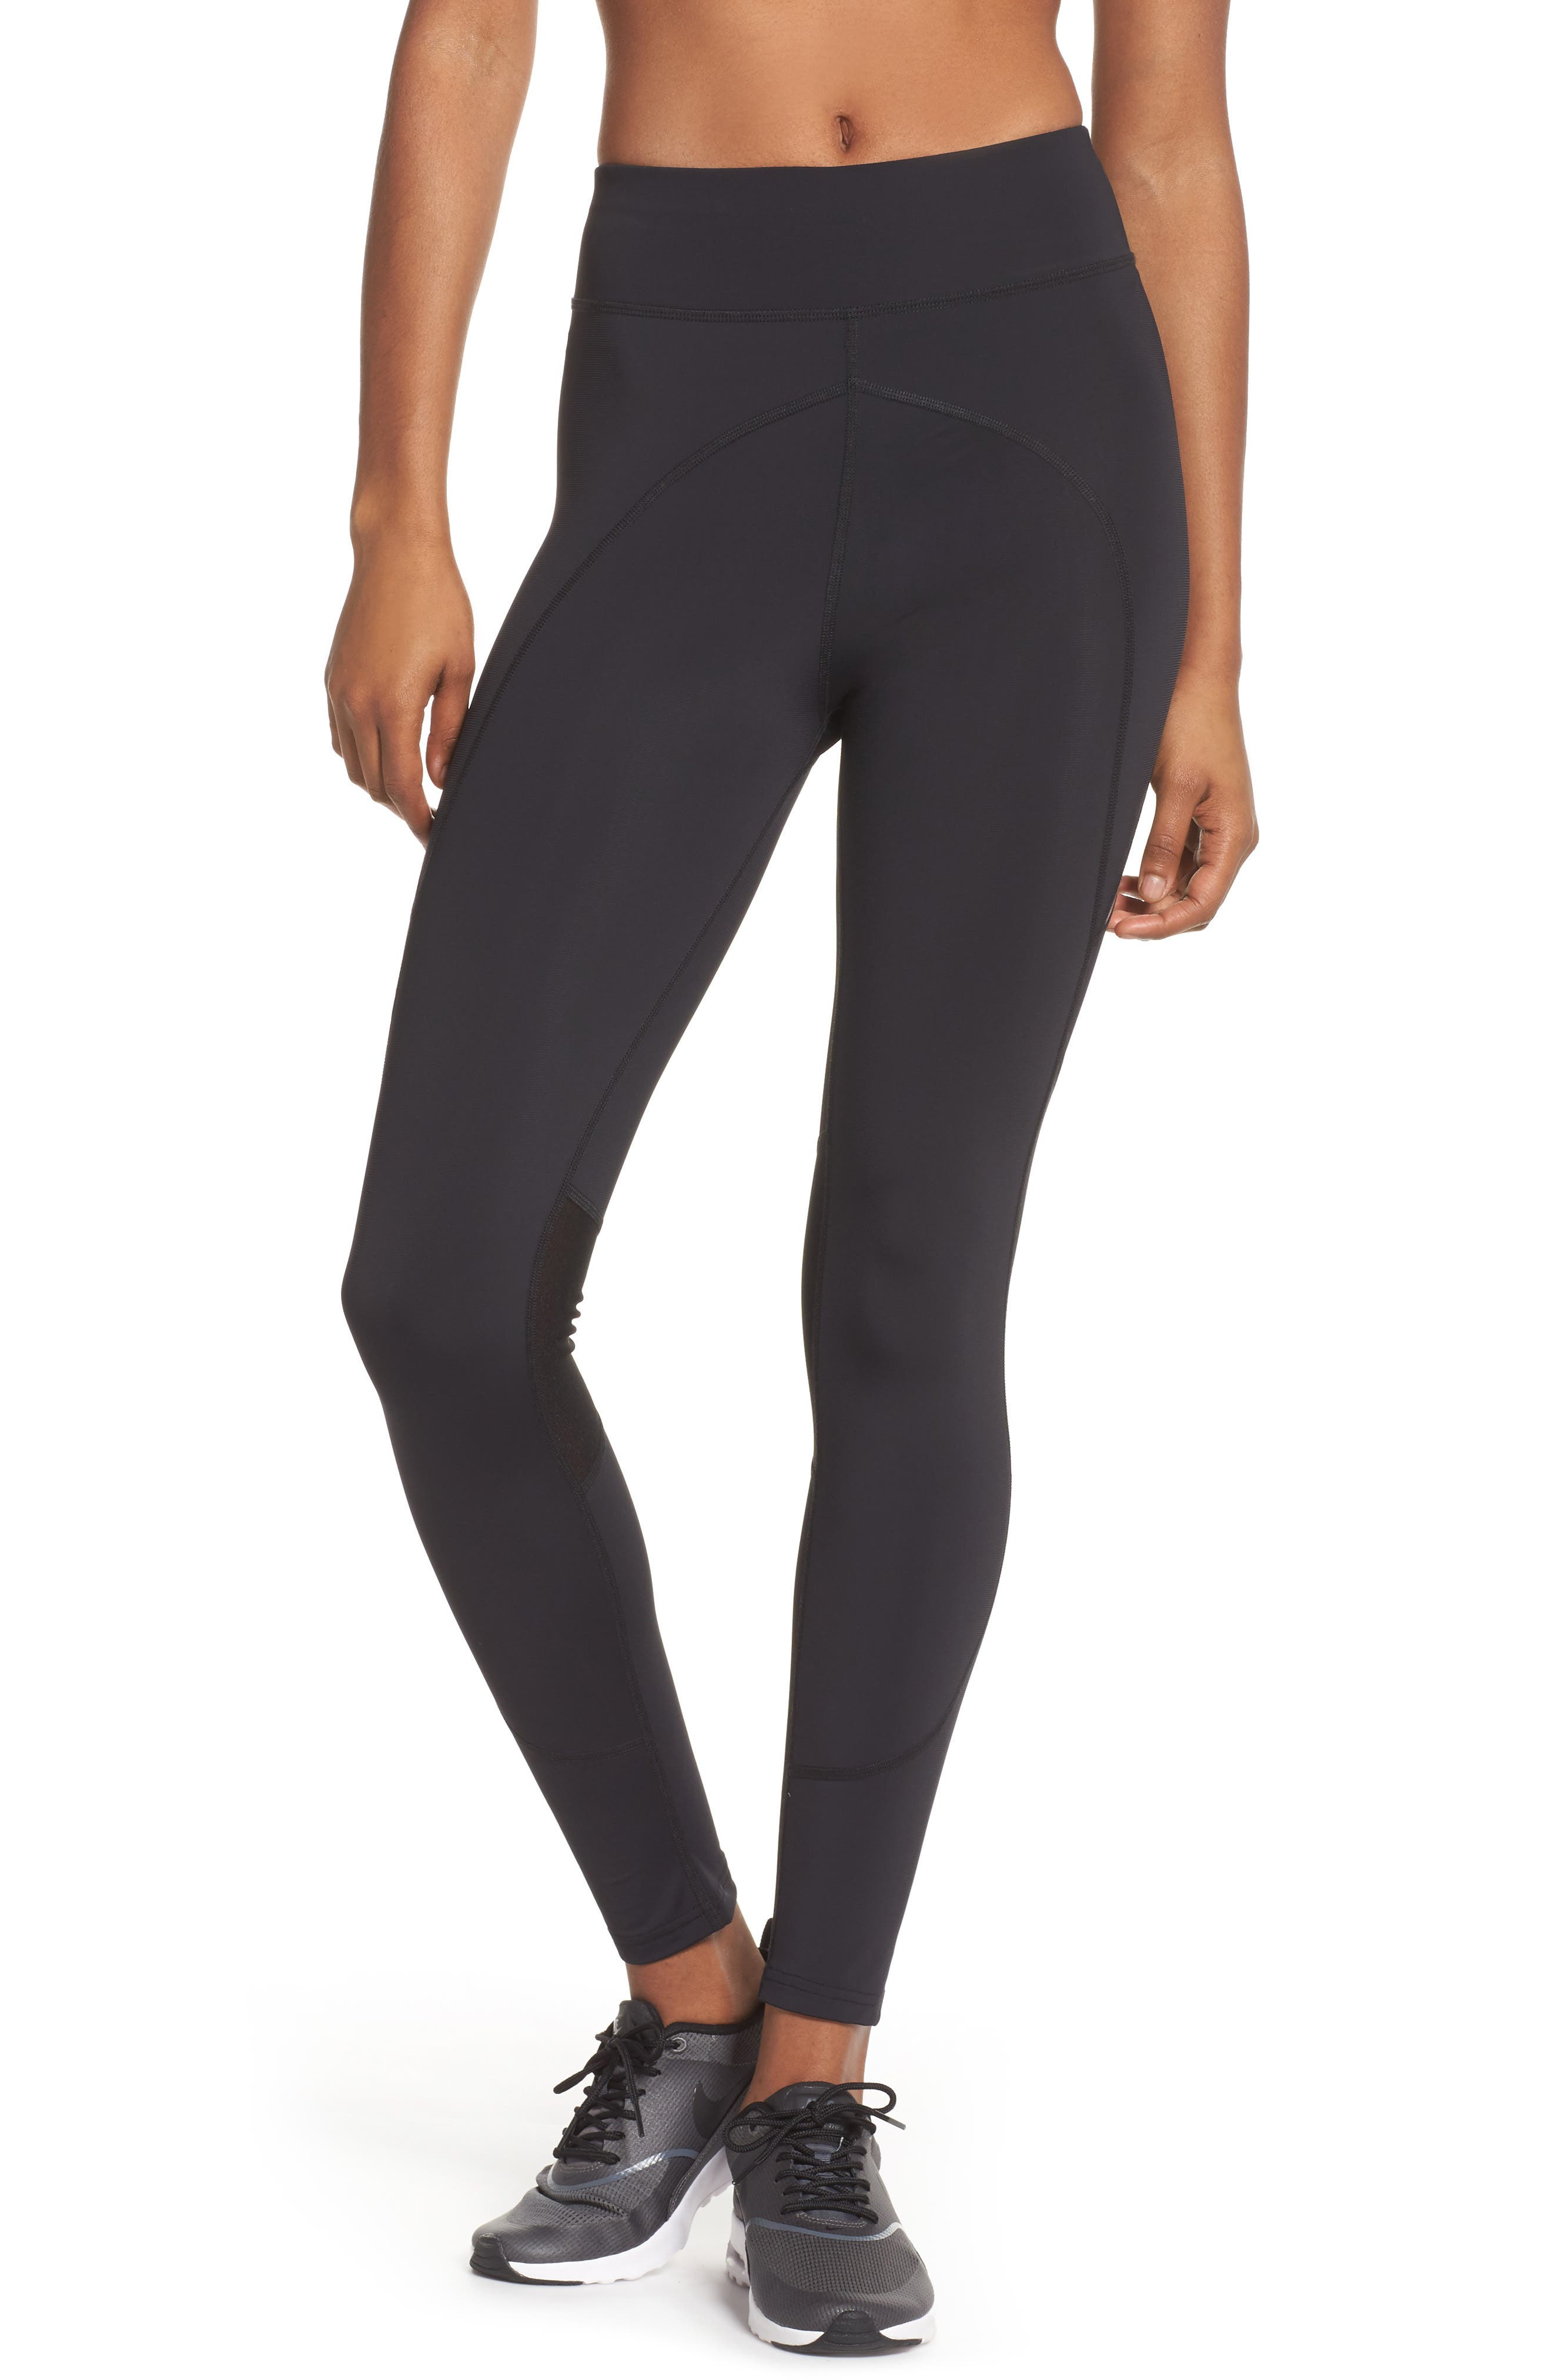 BoomBoom Athletica High Compression Sport Leggings,                         Main,                         color, 005